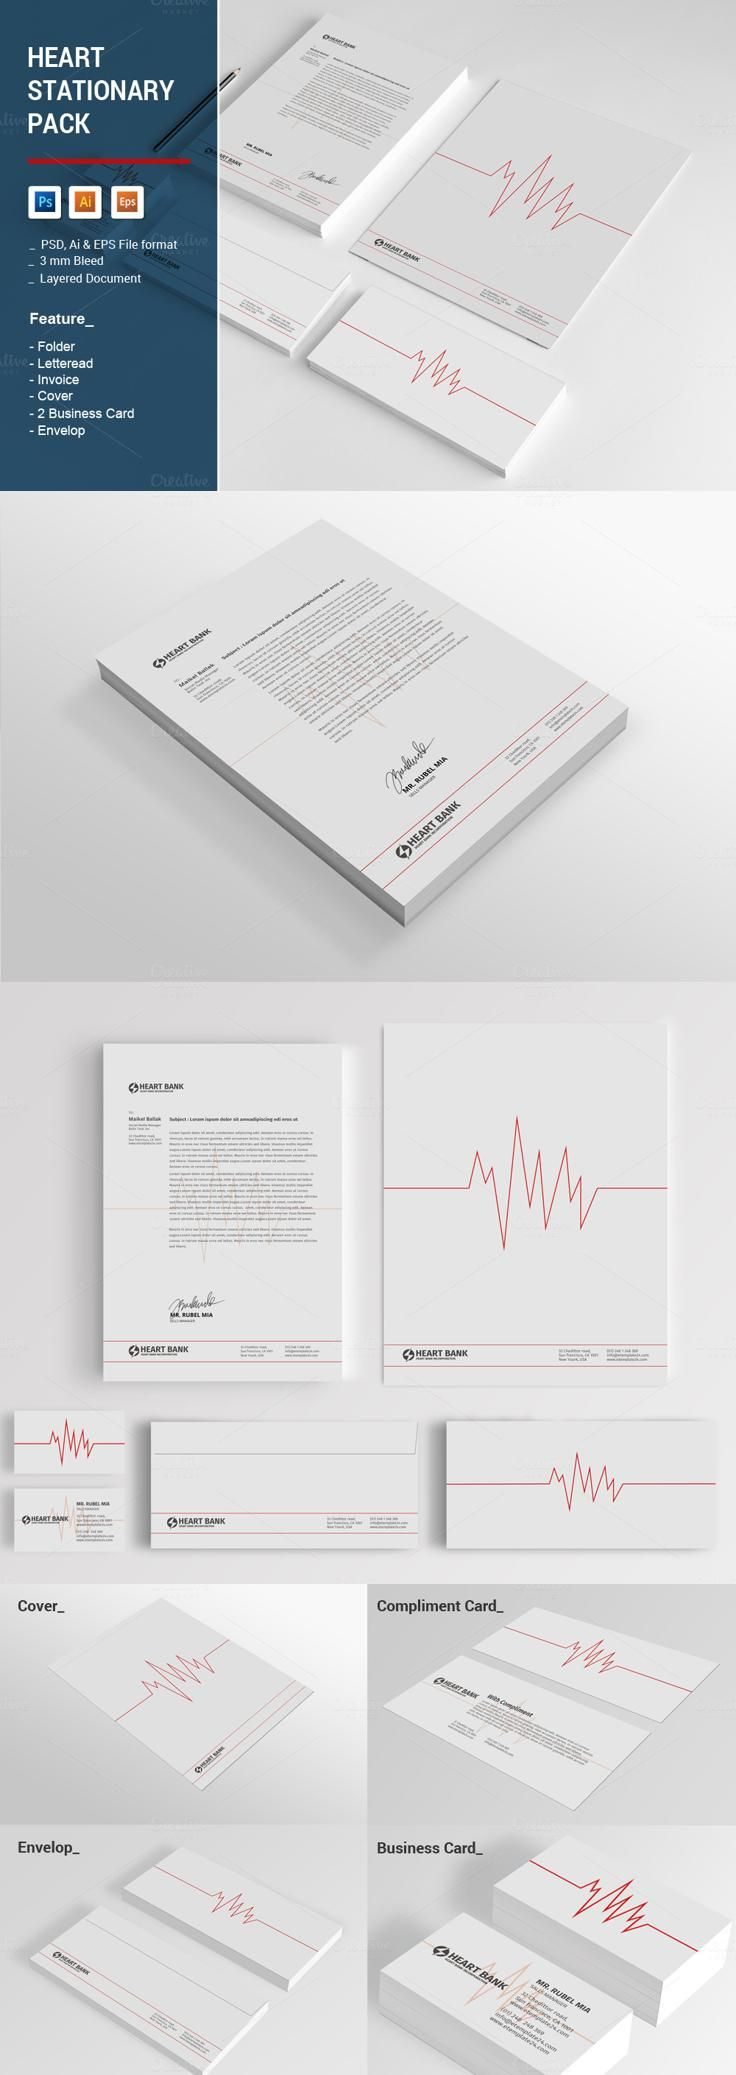 heart stationary pack (with images) stationery templates it manager resume examples catchy objective for college student internship